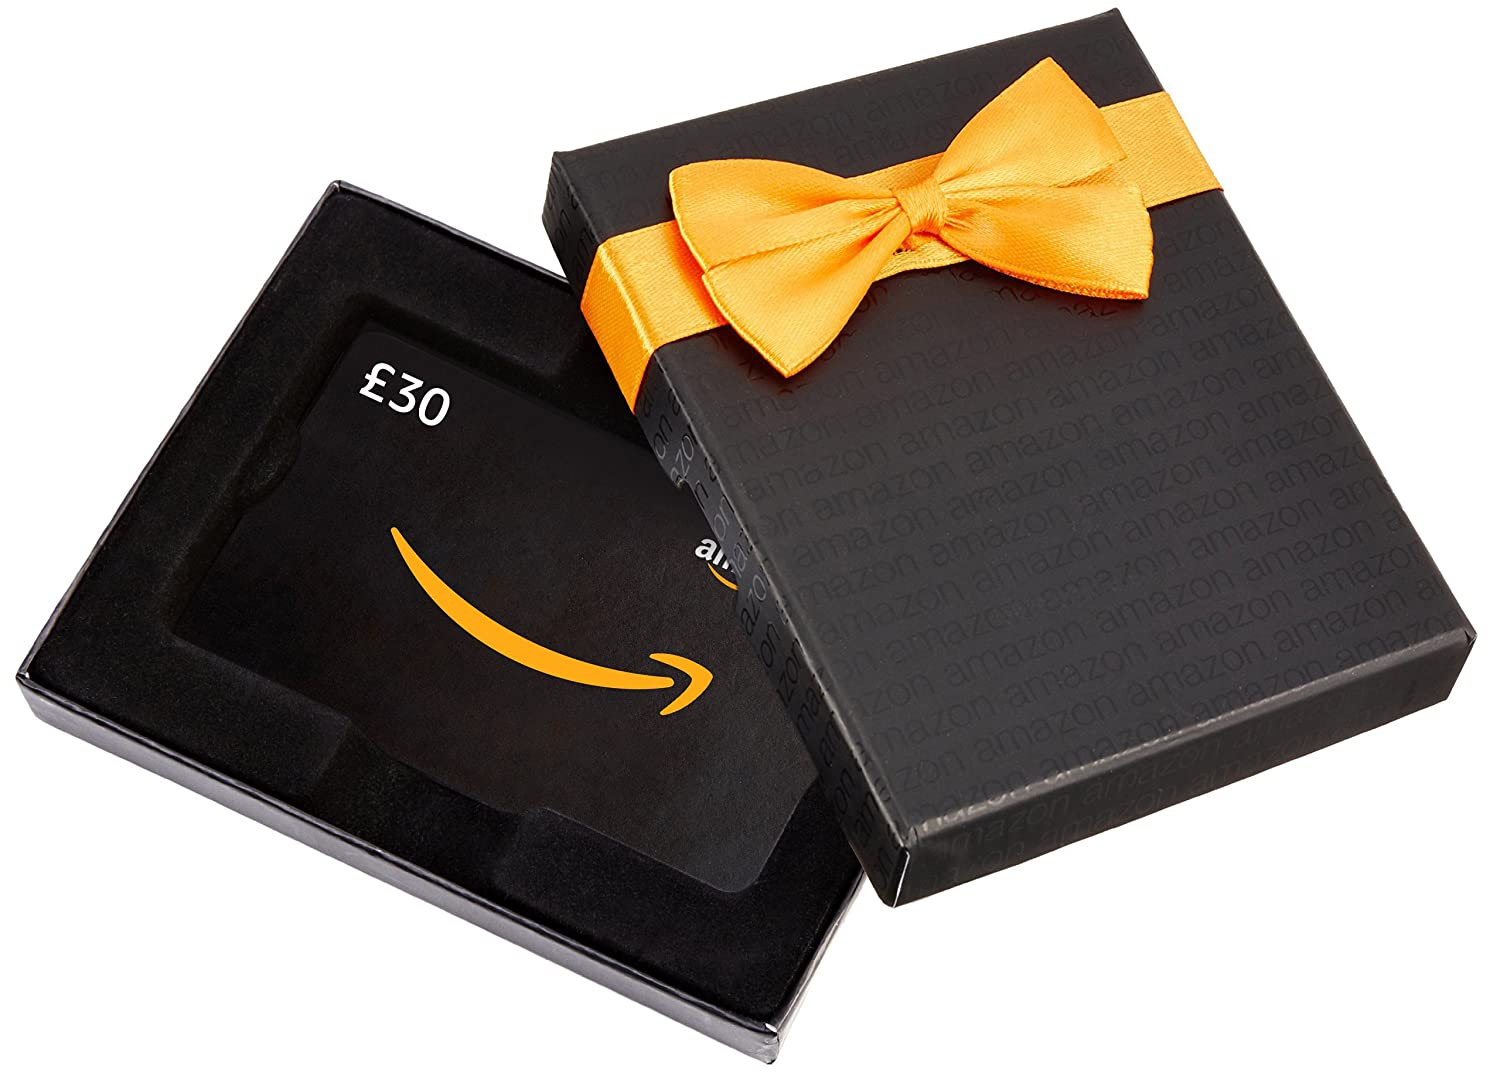 Amazon.co.uk Gift Card for Custom Amount in a Black Box - FREE One-Day Delivery Amazon EU S.à.r.l. VariableDenomination